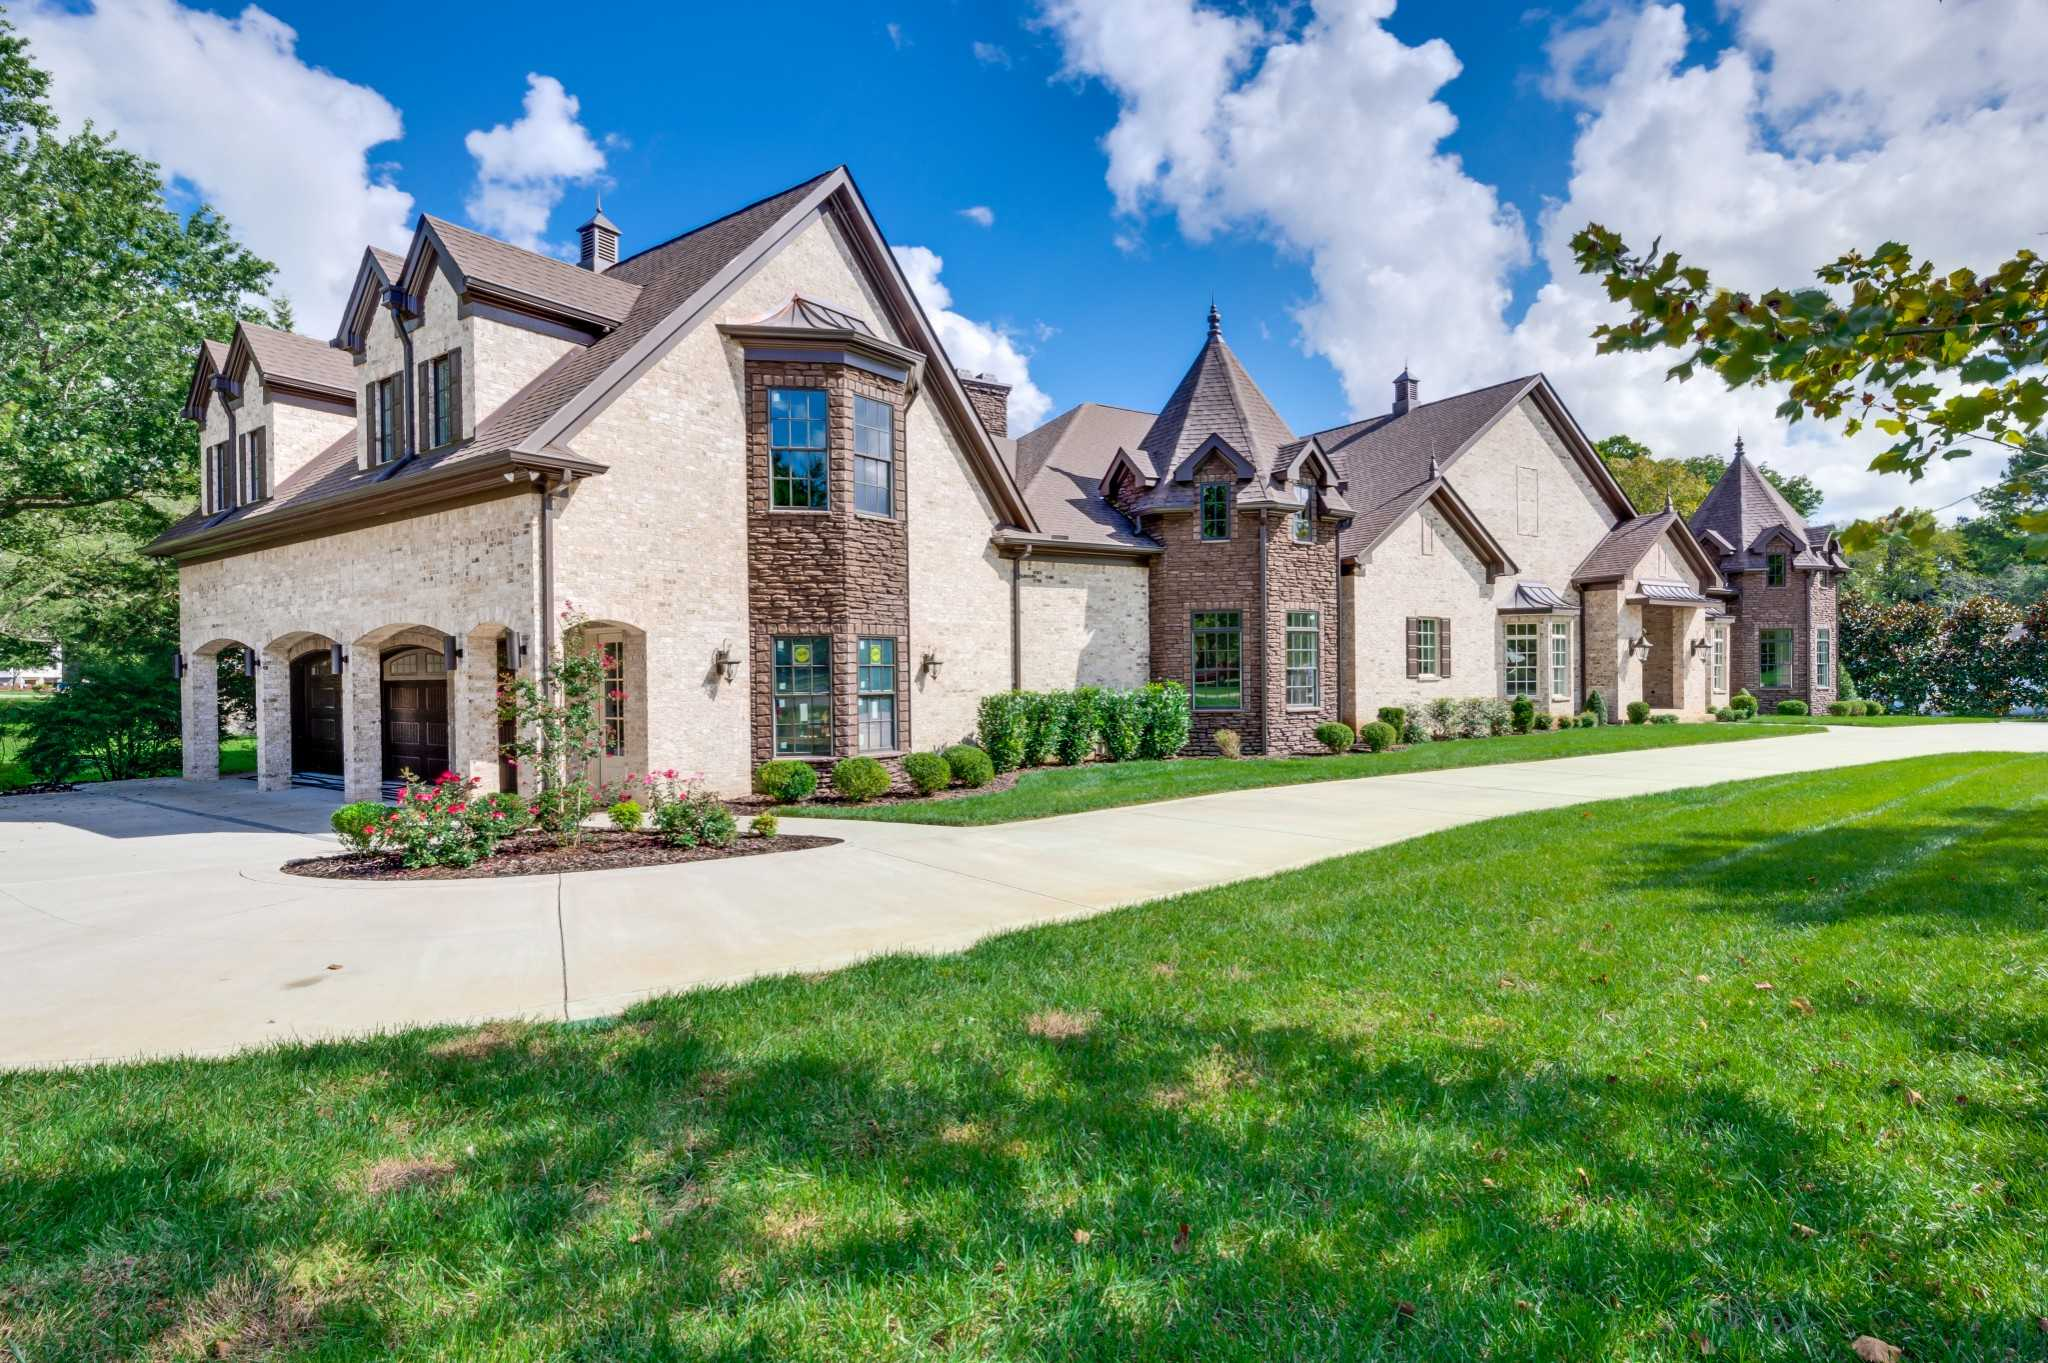 $3,300,000 - 5Br/6Ba -  for Sale in Iroquois Est, Brentwood